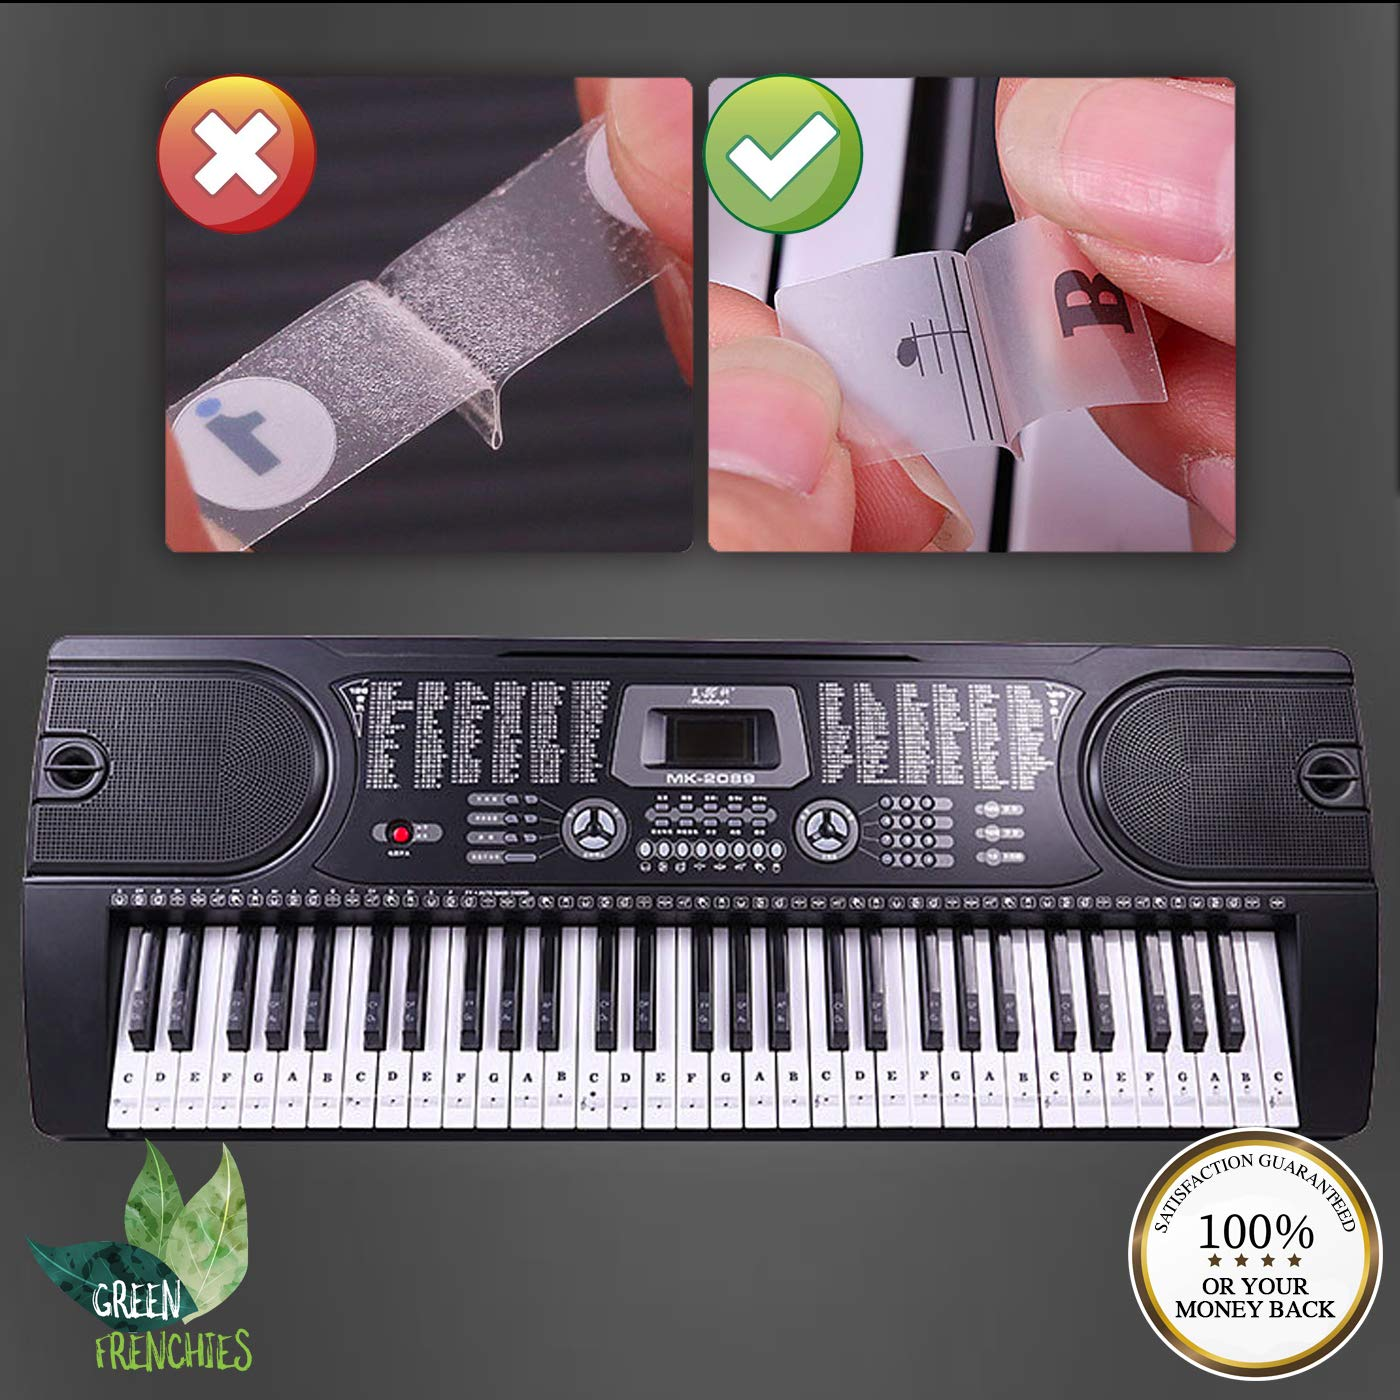 Green Frenchies G.F. Piano Keyboard Stickers, Transparent Stickers for White and Black Keys, Removable Stickers for 37, 49, 54, 61, and 88 Keys with Instructions by Green Frenchies (Image #4)